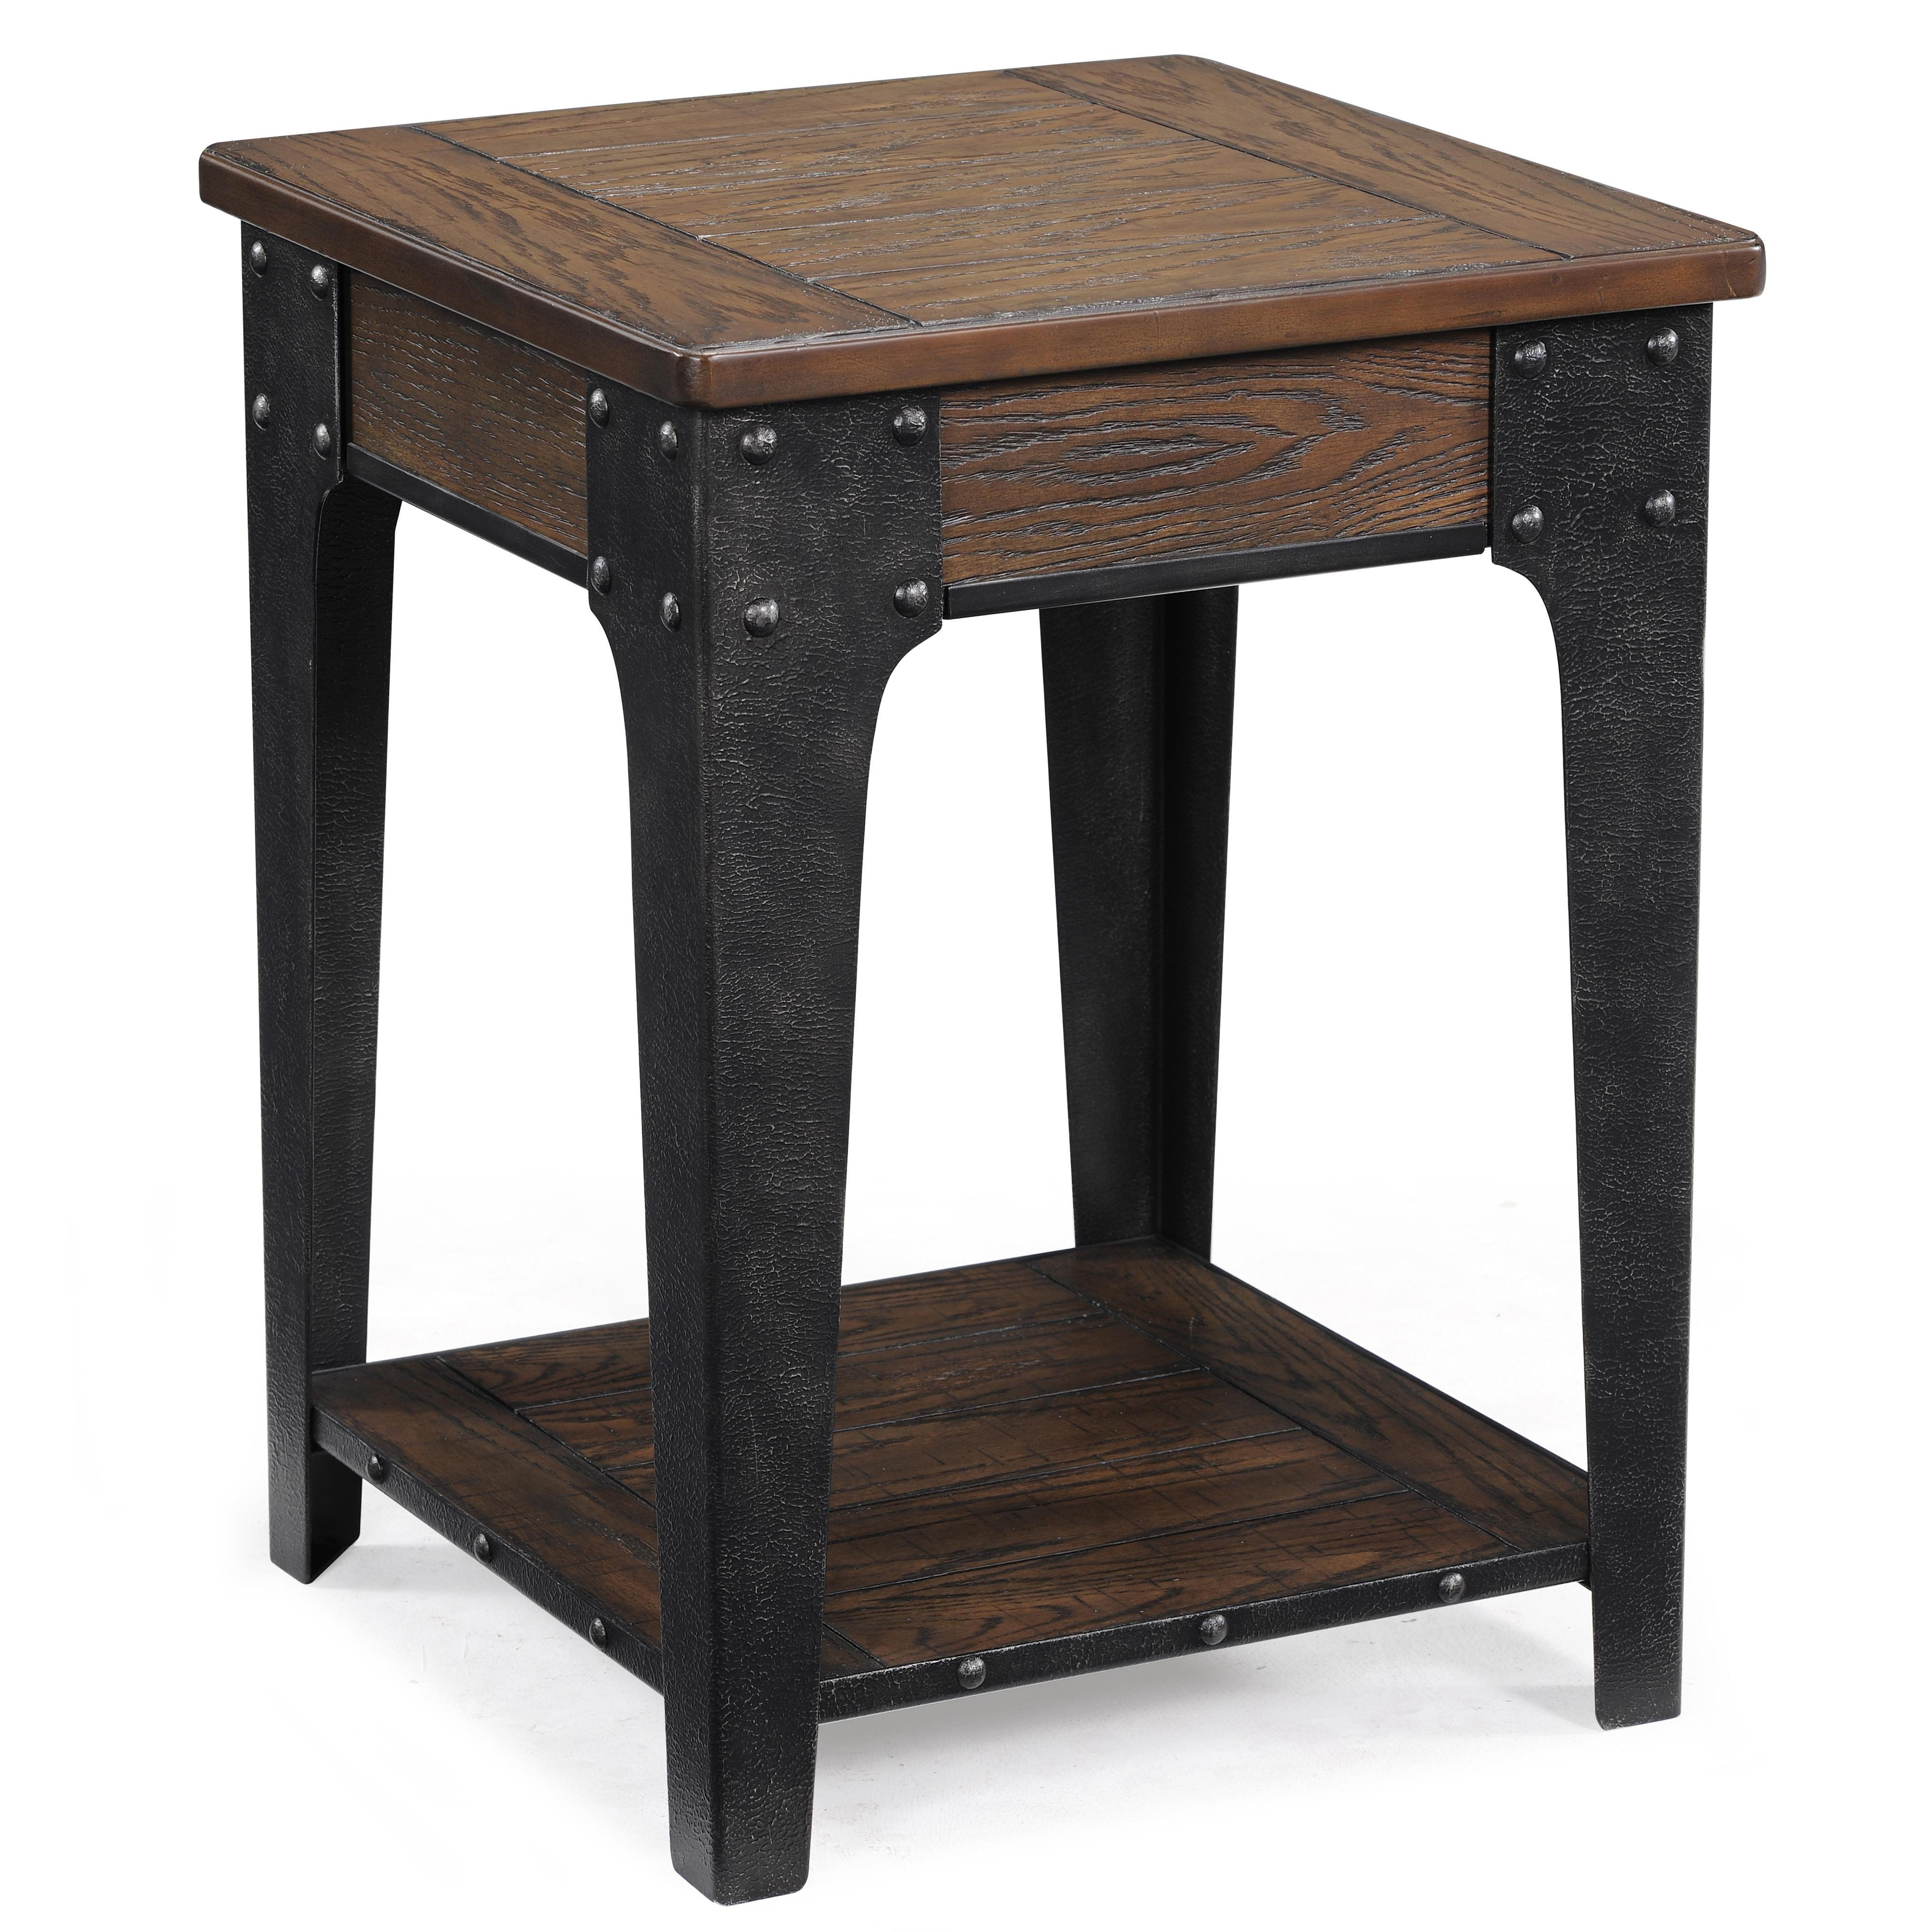 magnussen home lakehurst square accent table dunk products color wood item number tile patio outdoor furniture antique oval coffee target legs small trestle kitchen expandable